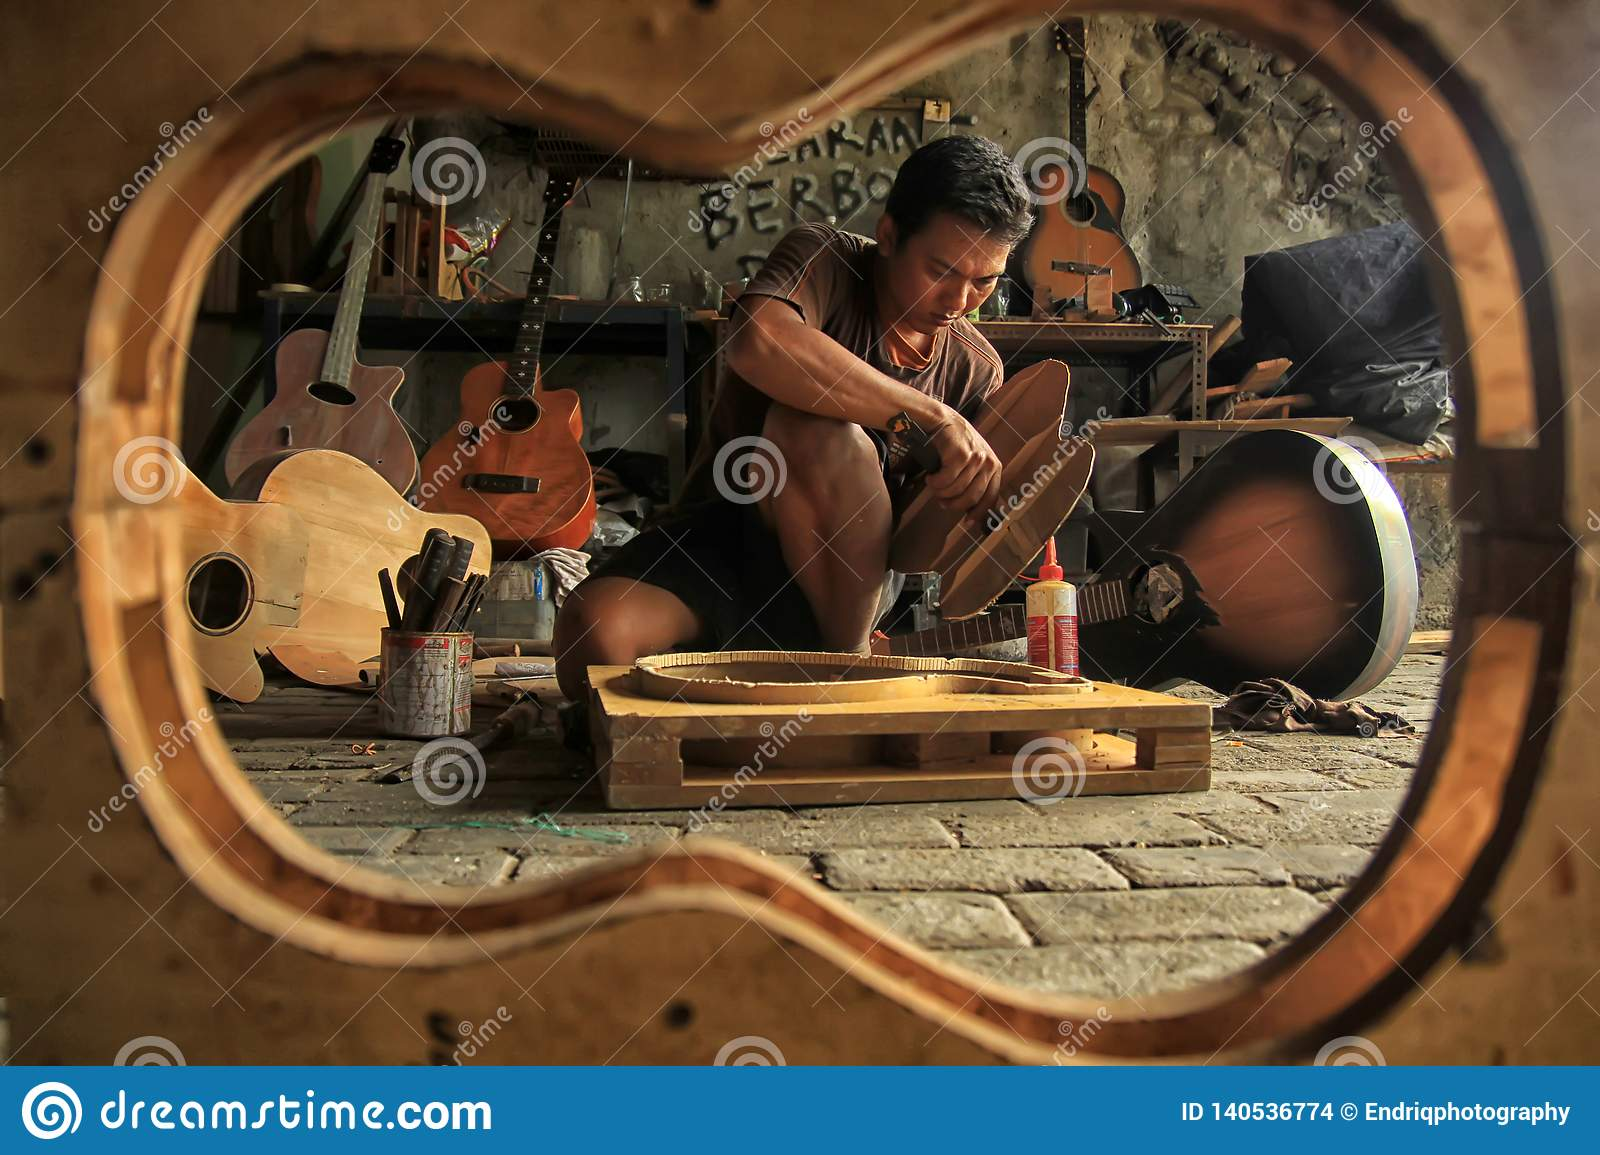 A guitar craftsman is busy making orders from his clients.